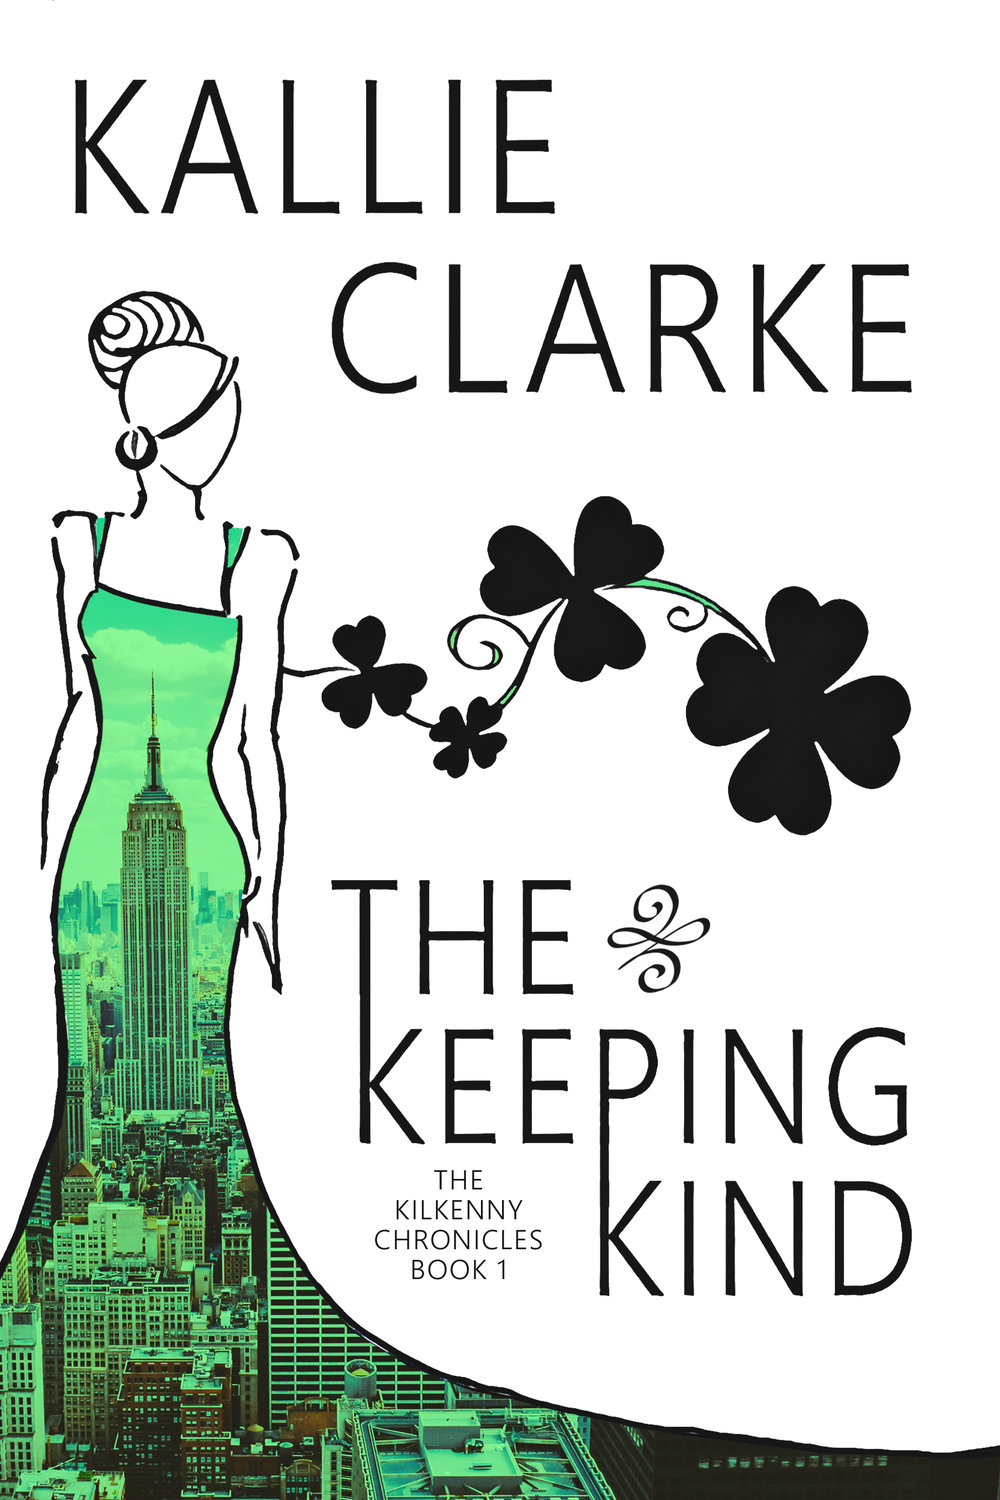 Kallie Clarke's breakout novel The Keeping Kind is great for those who love books by Sophie Kinsella.  - Amazon Reviewer